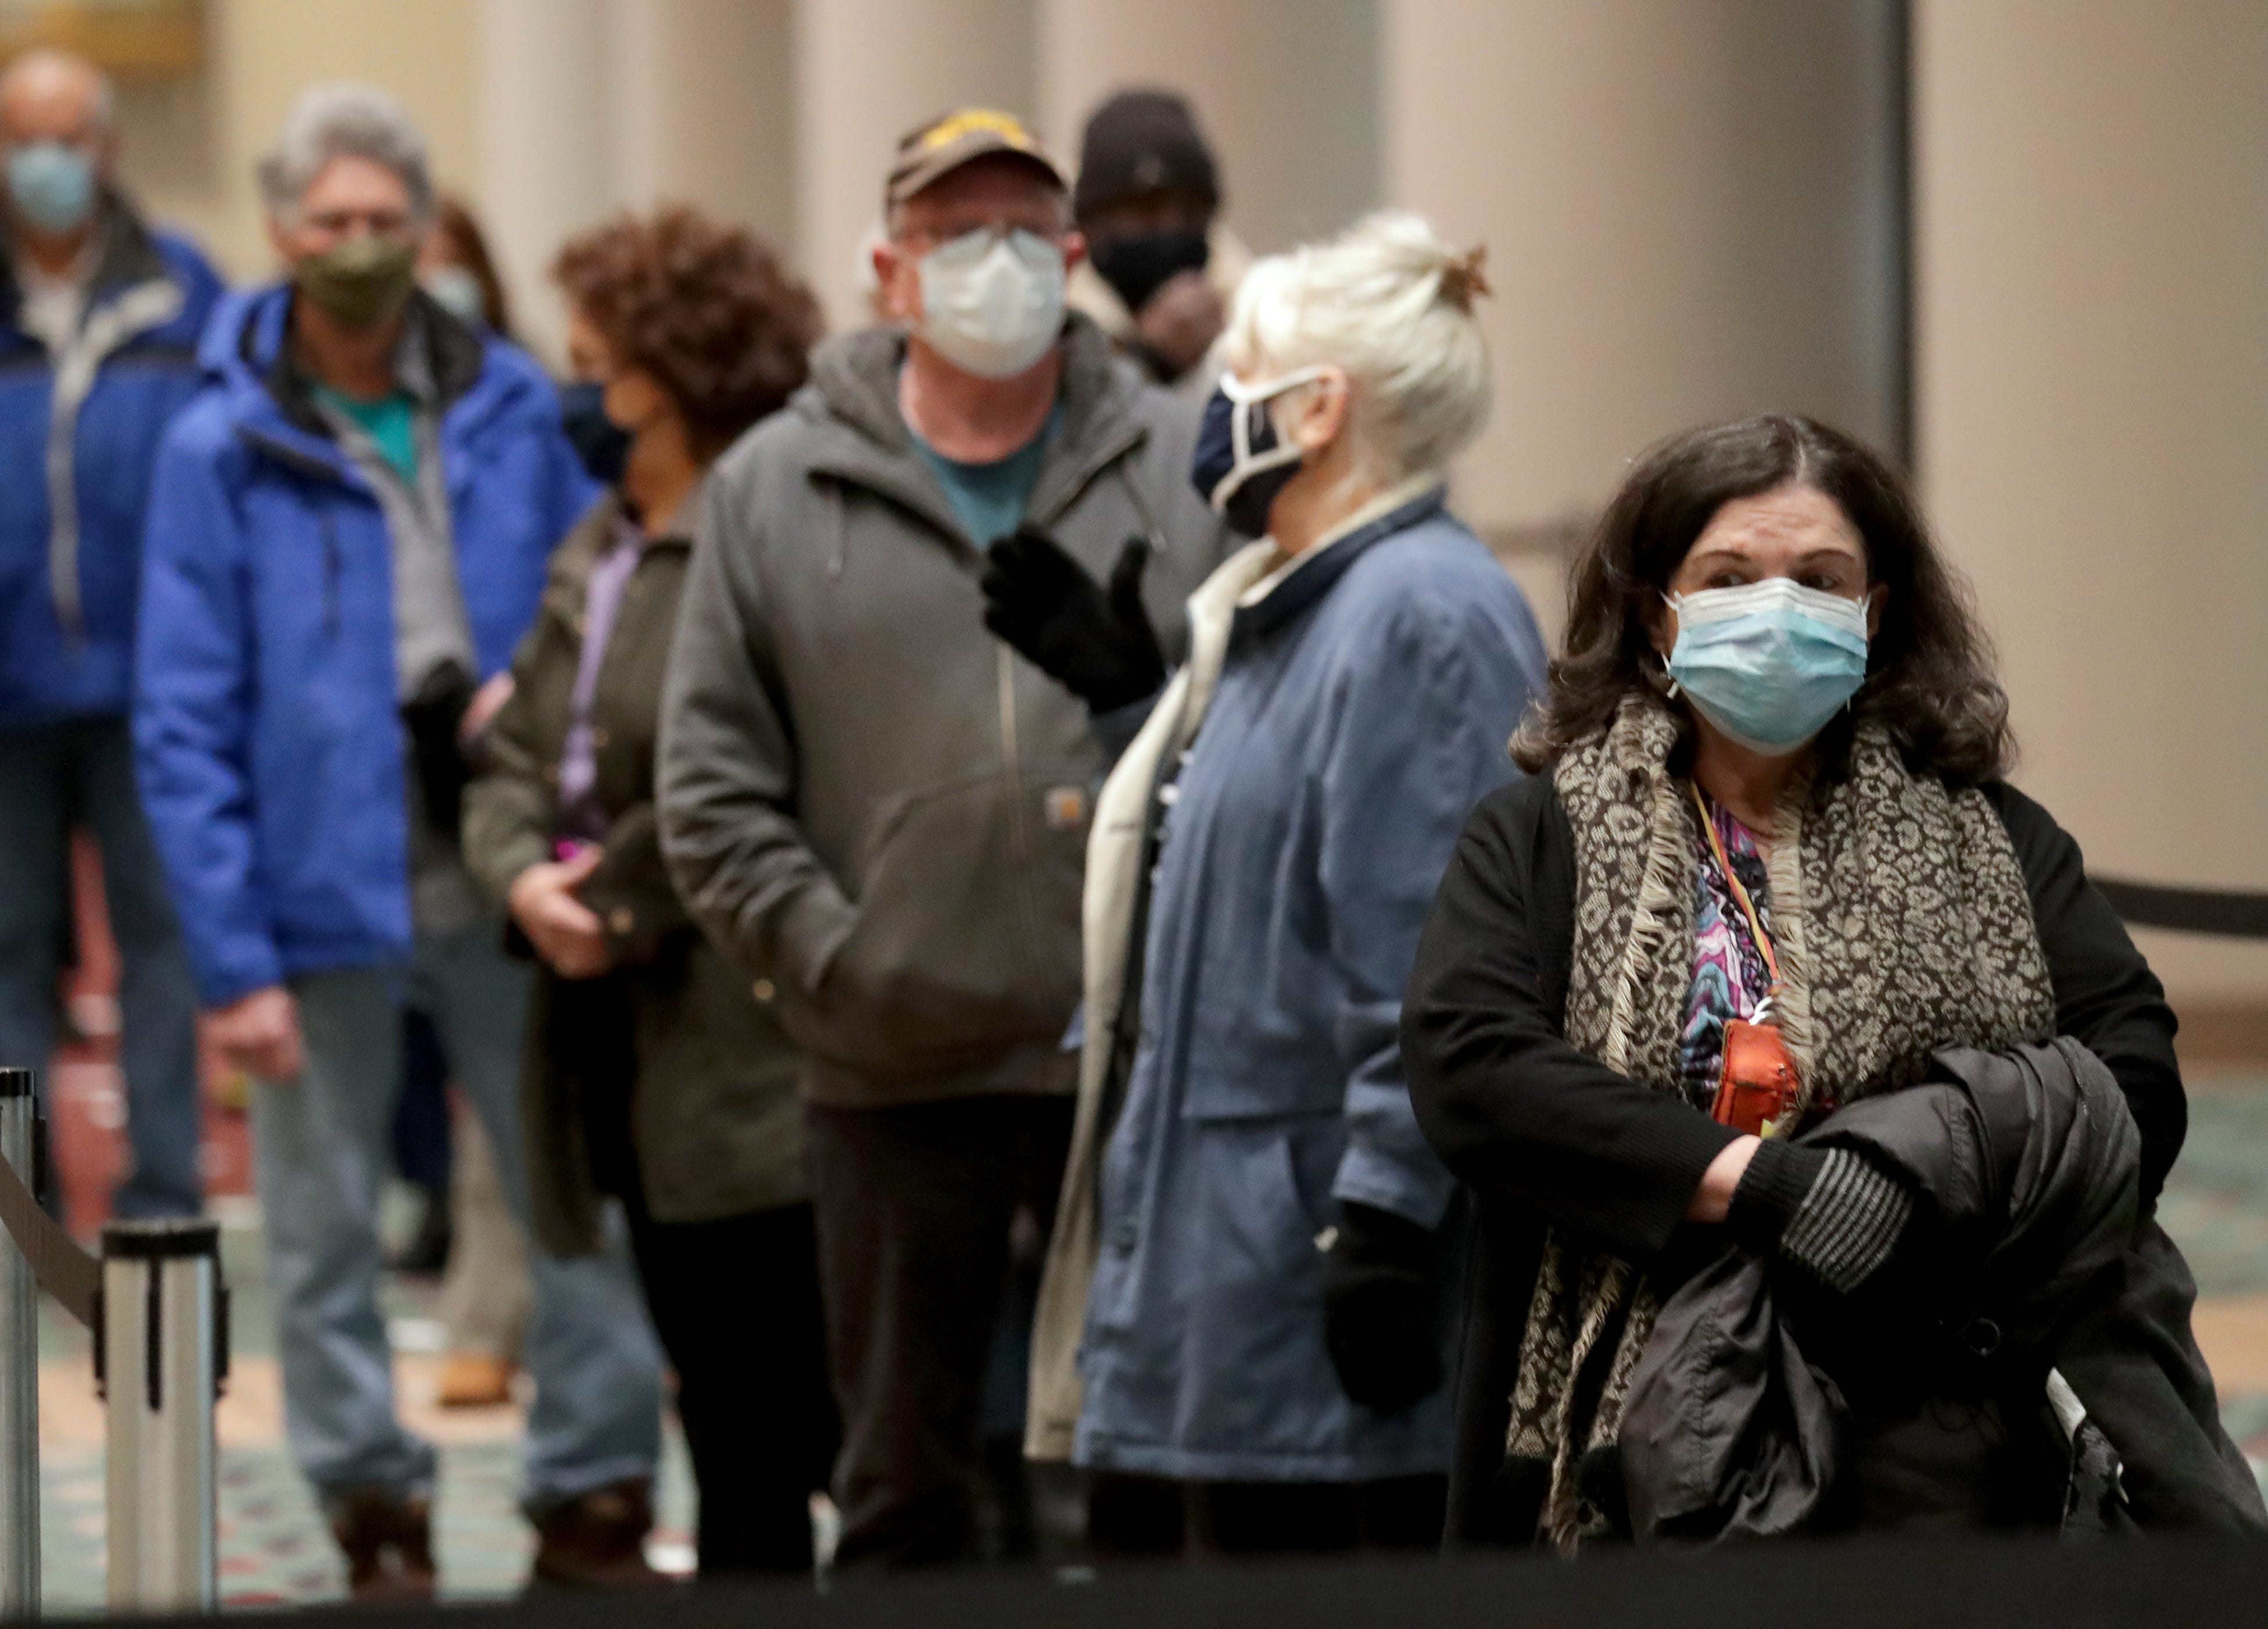 People wait to get the COVID-19 vaccination at the Wisconsin Center in Milwaukee on Monday, Feb. 1, 2021.